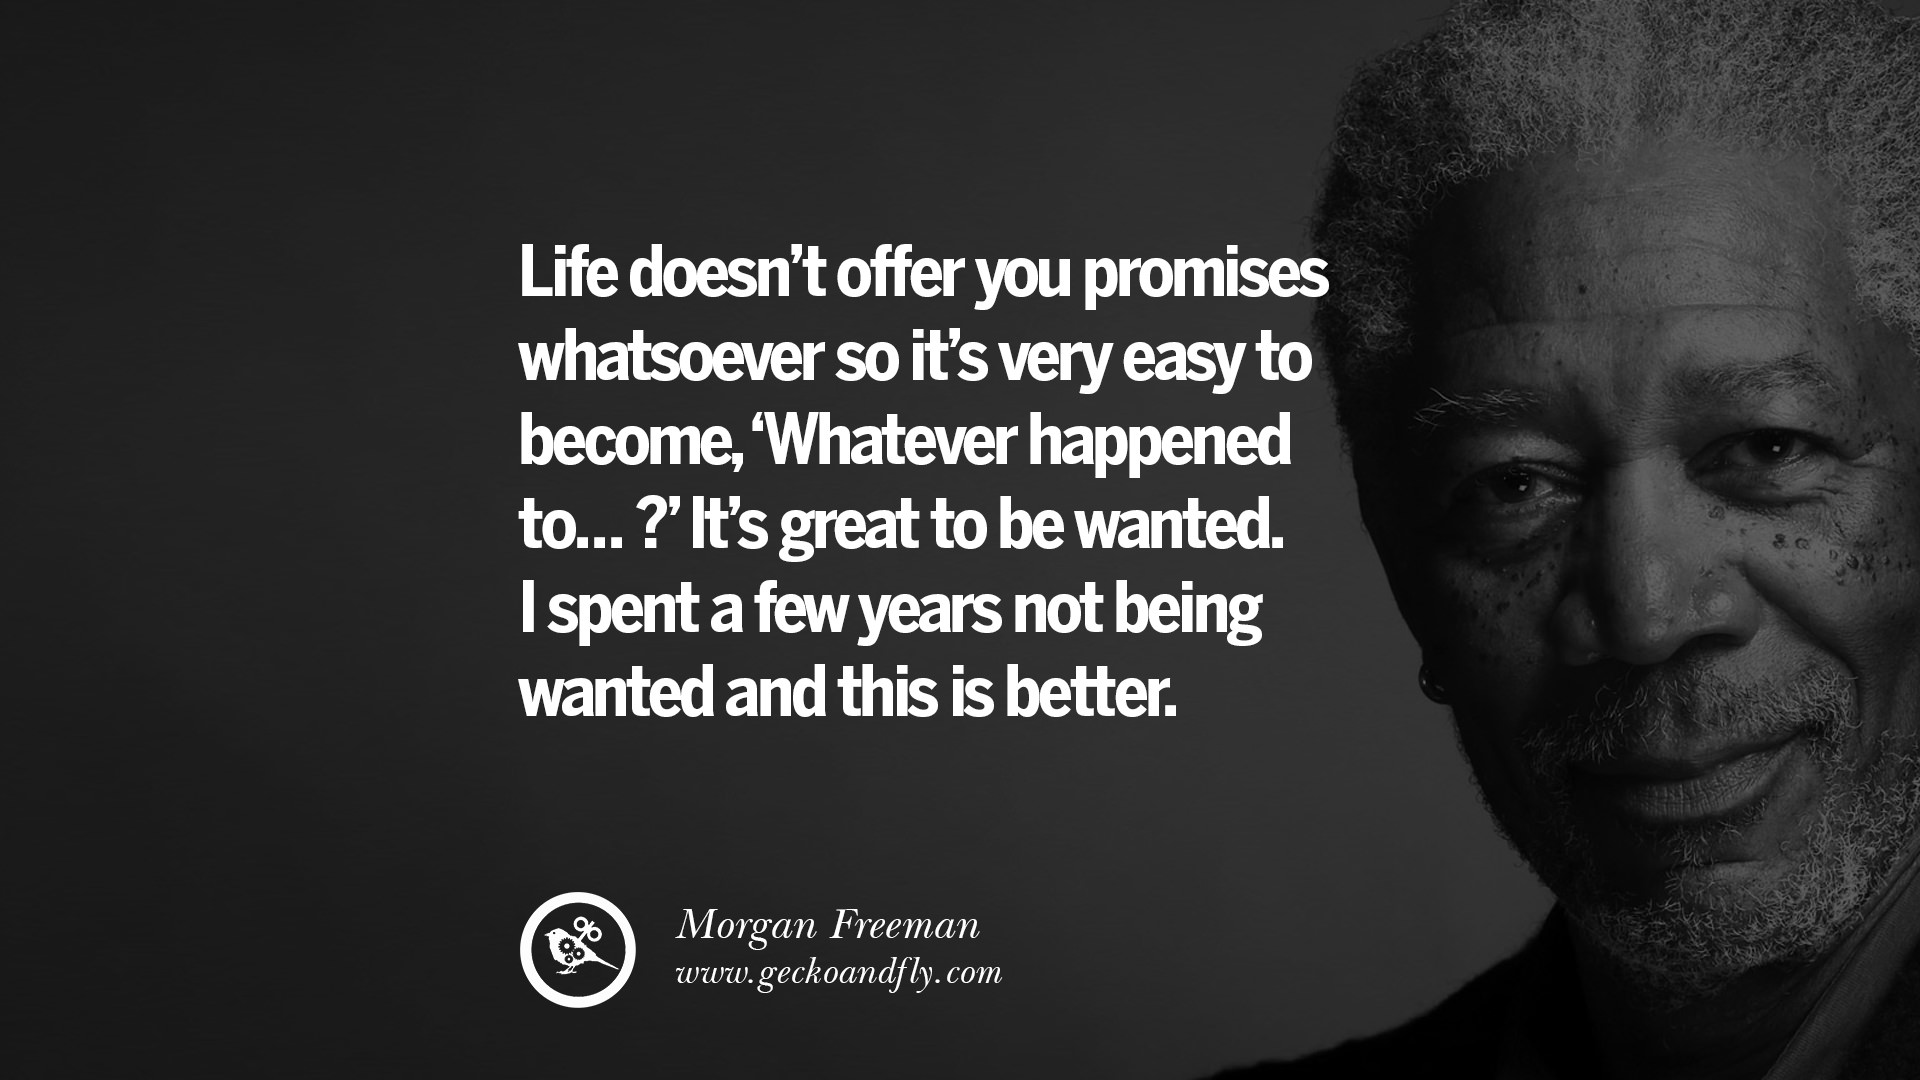 Quotes About Life: 10 Morgan Freeman Quotes On Life, Death, Success And Struggle